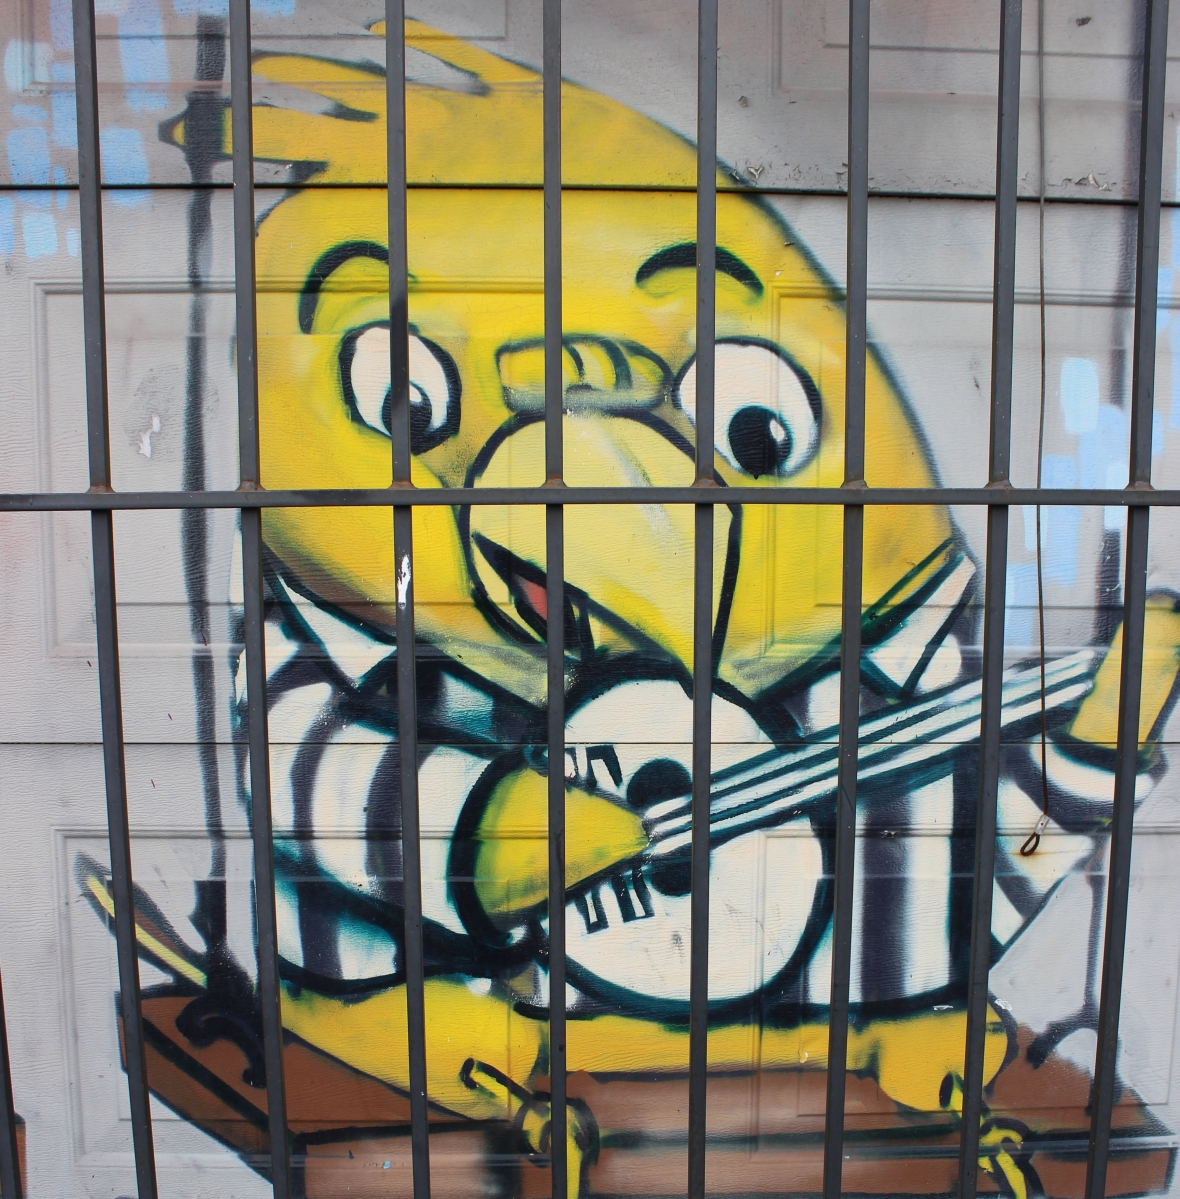 Jail bird mural in Toronto